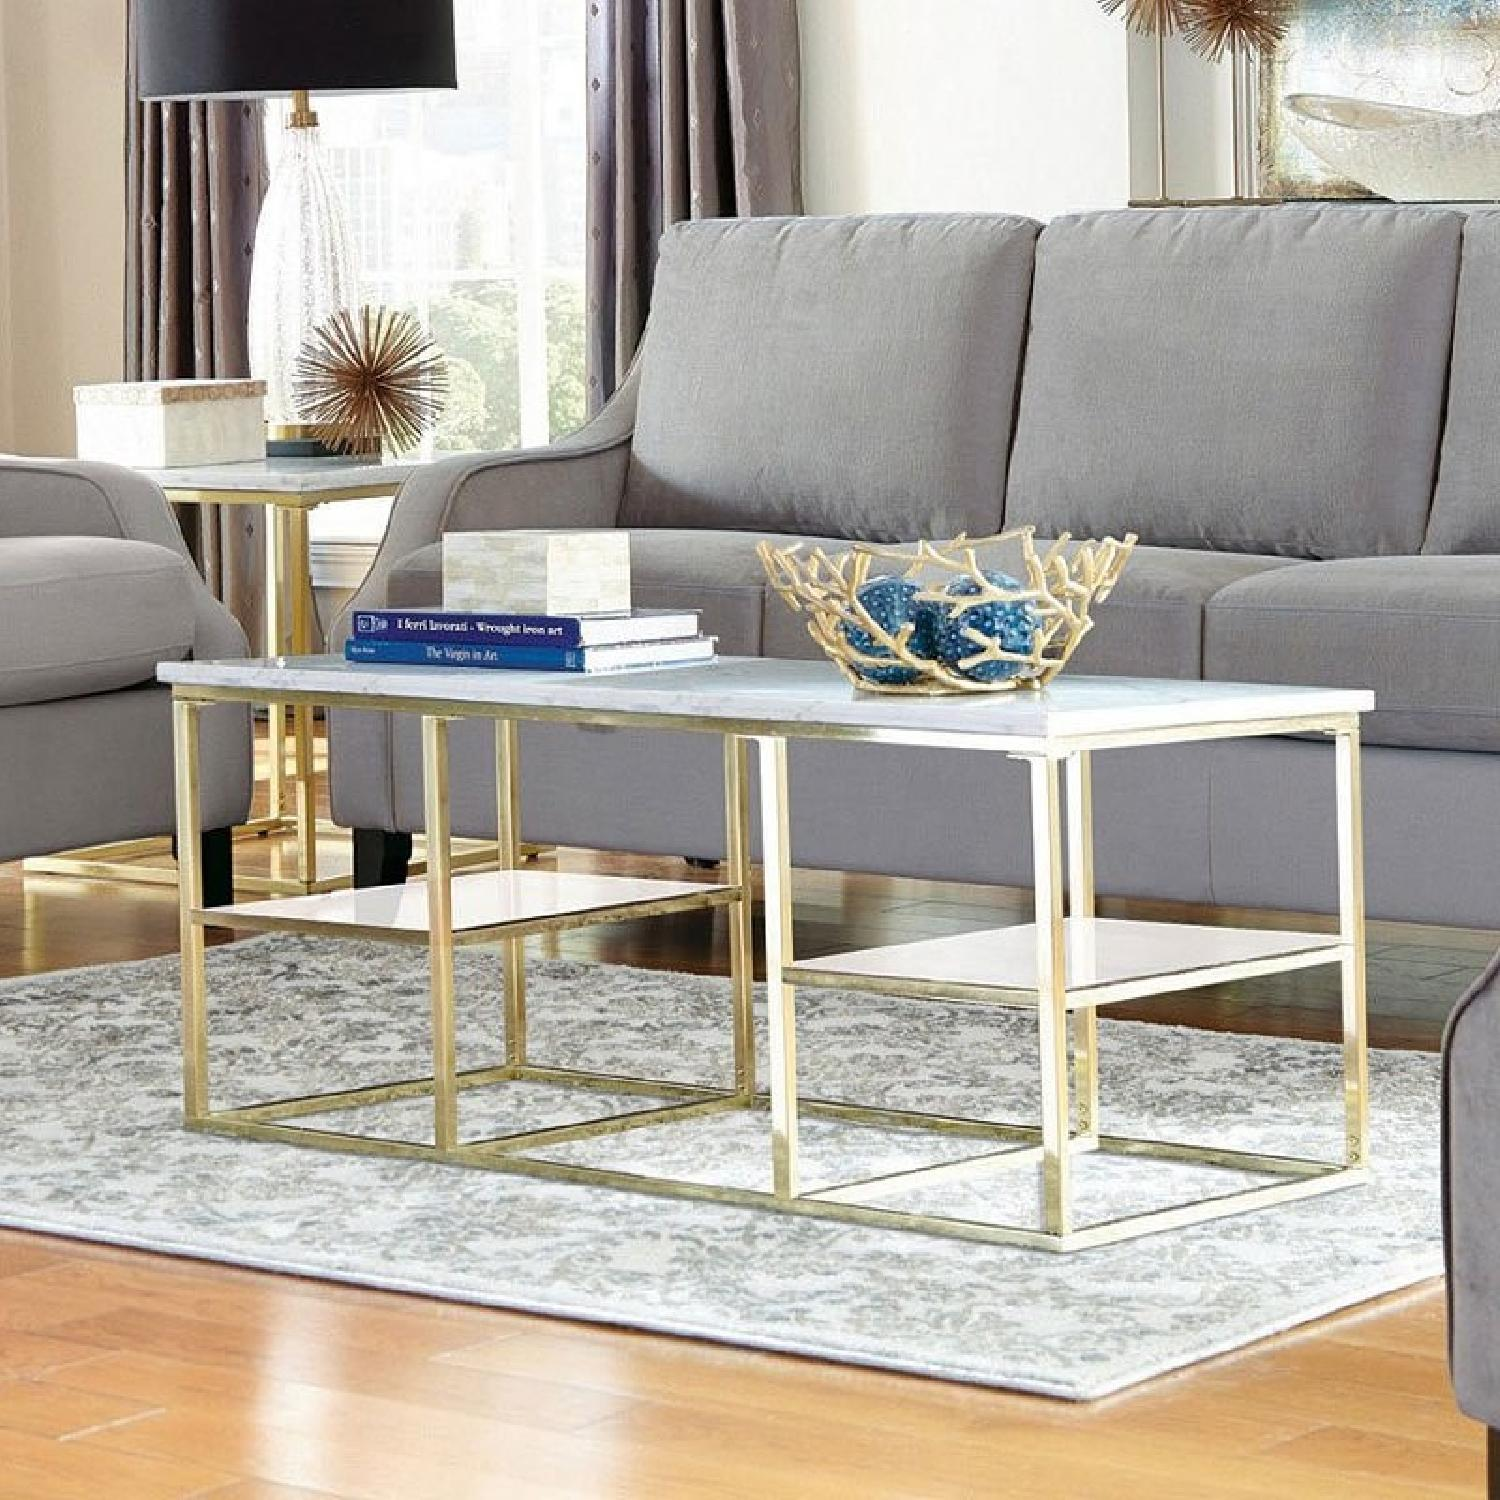 Marble Top Coffee Table w/ Brass Legs - image-1